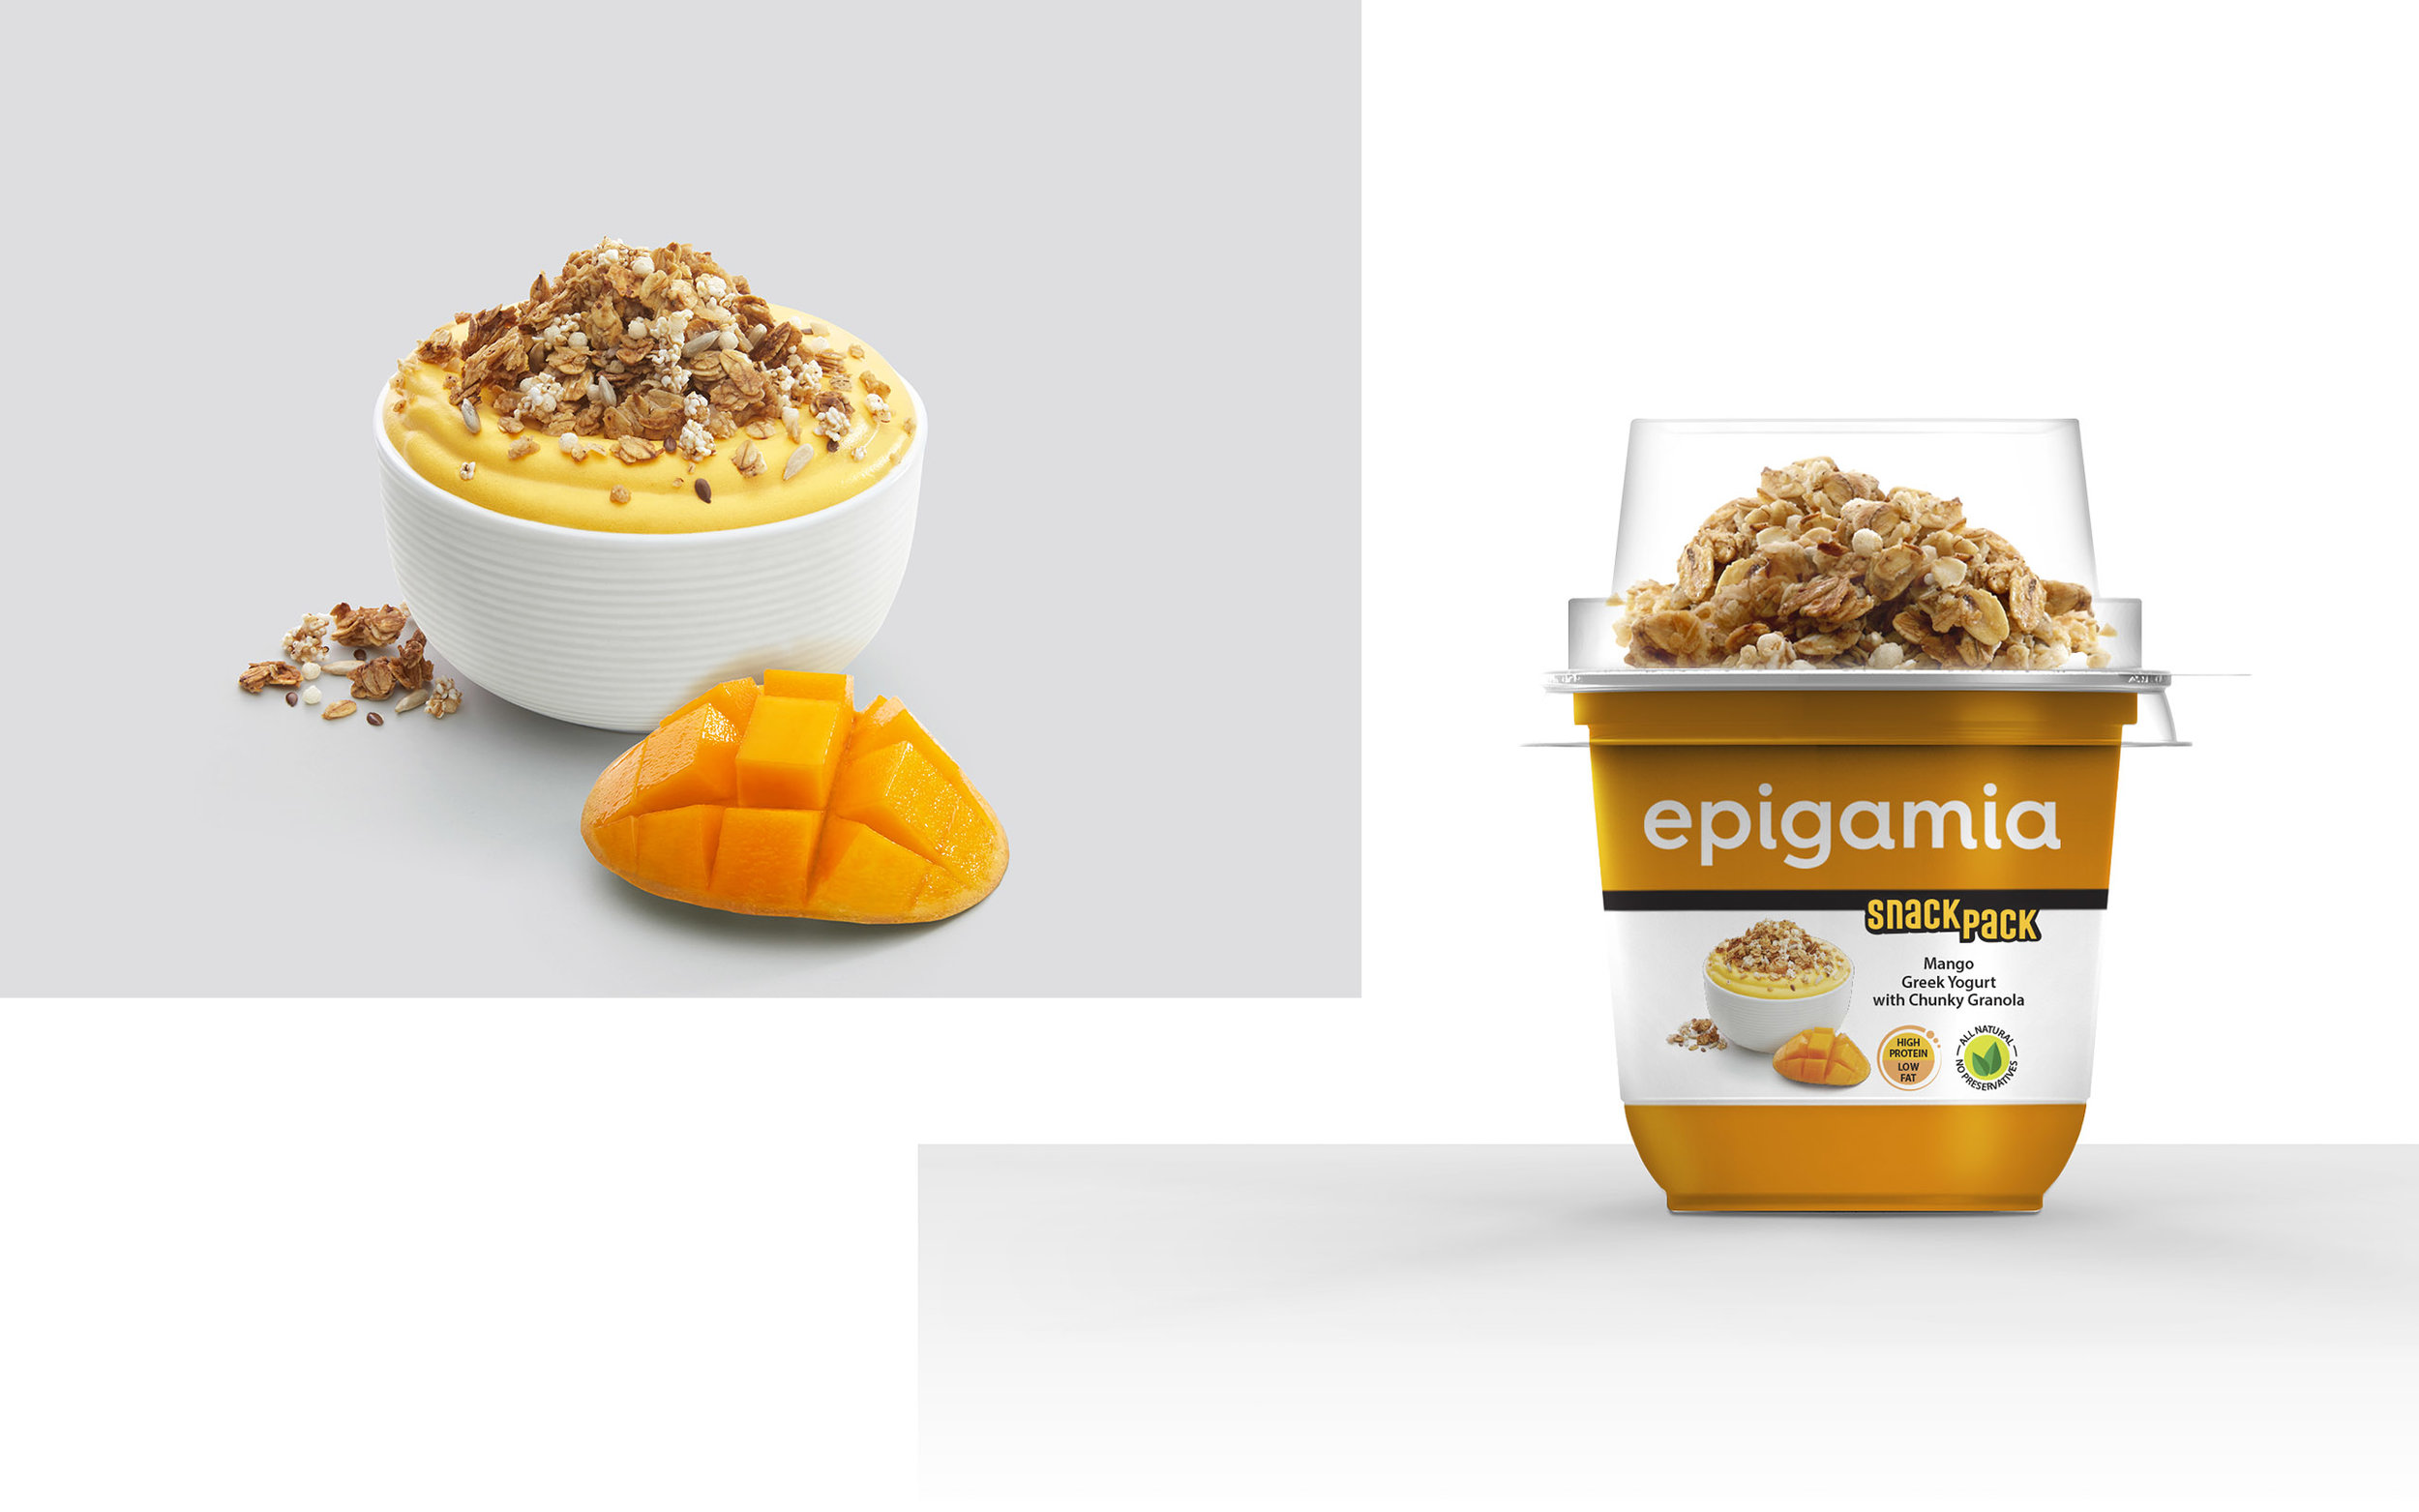 Epigamia Yogurt - SnackPack